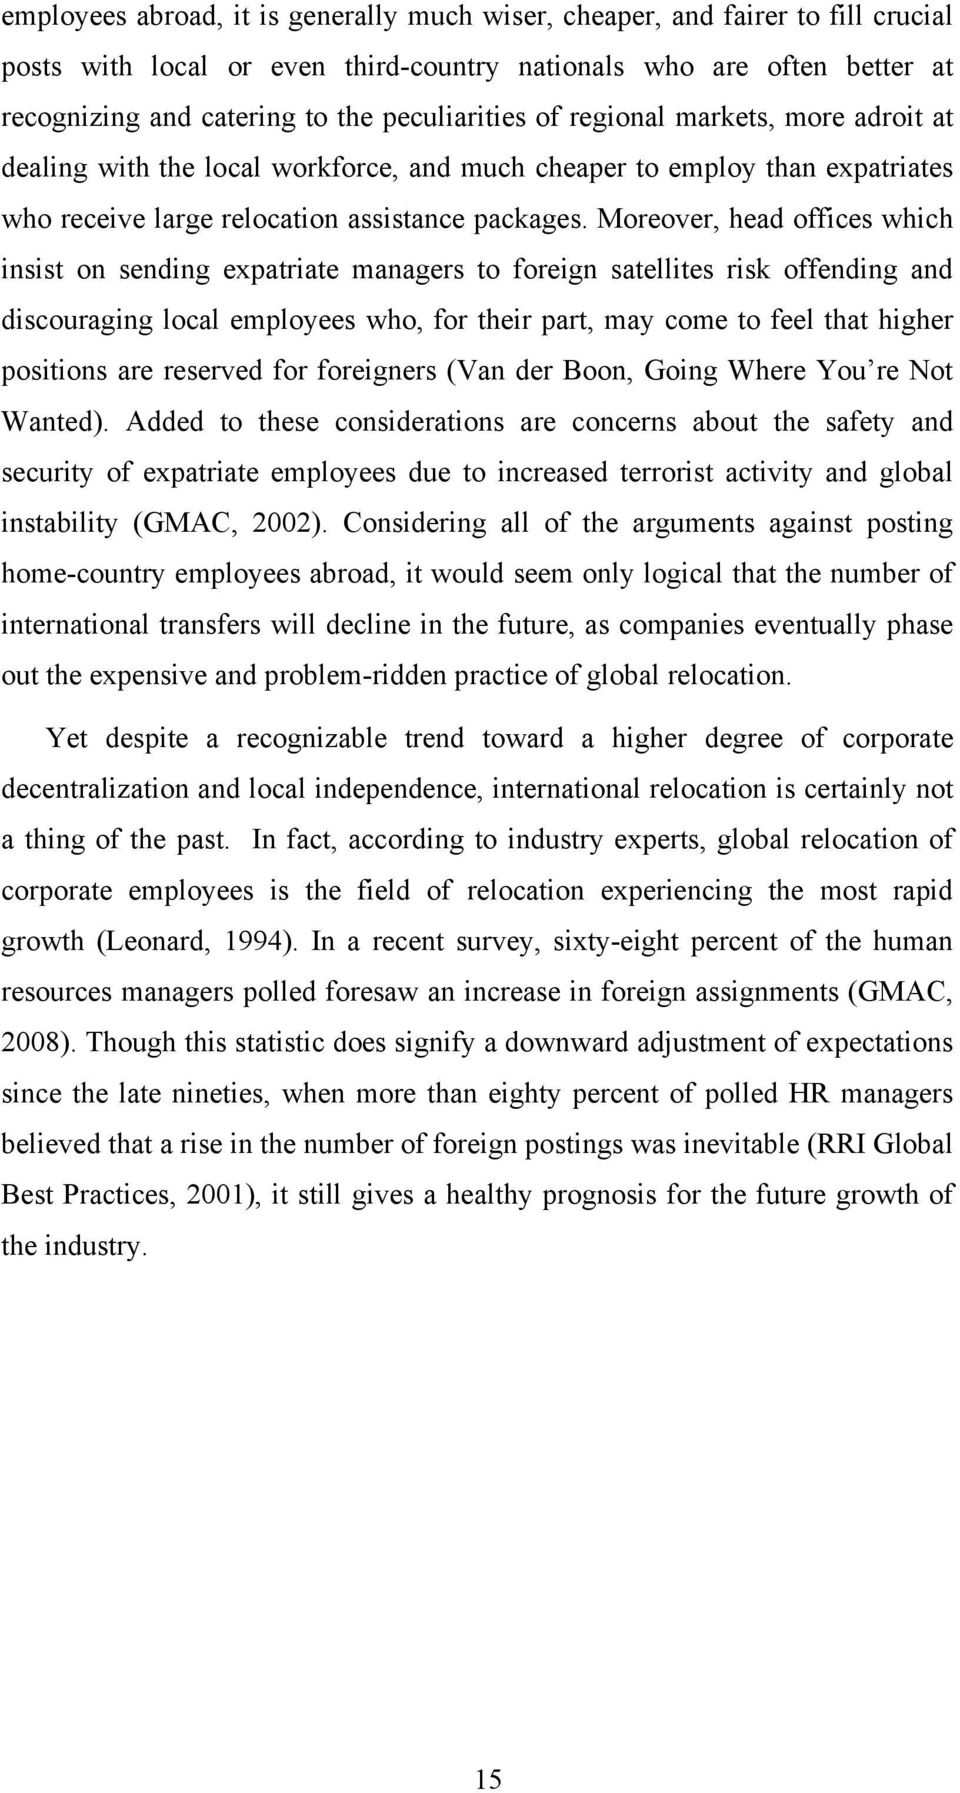 Moreover, head offices which insist on sending expatriate managers to foreign satellites risk offending and discouraging local employees who, for their part, may come to feel that higher positions